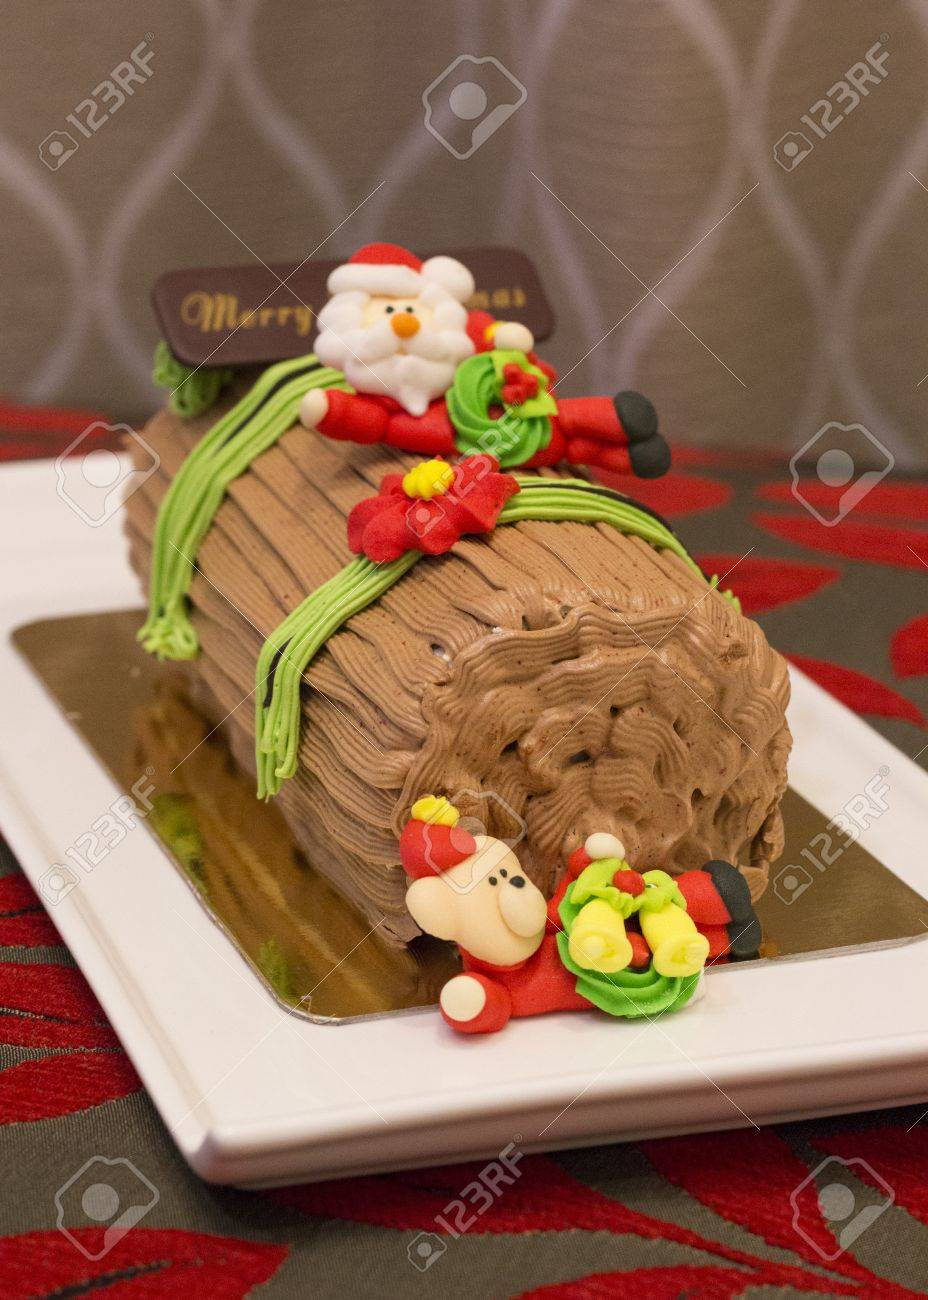 Christmas Yule Log Cake.Traditional Christmas Yule Log Cake Decorated With Santa Bear